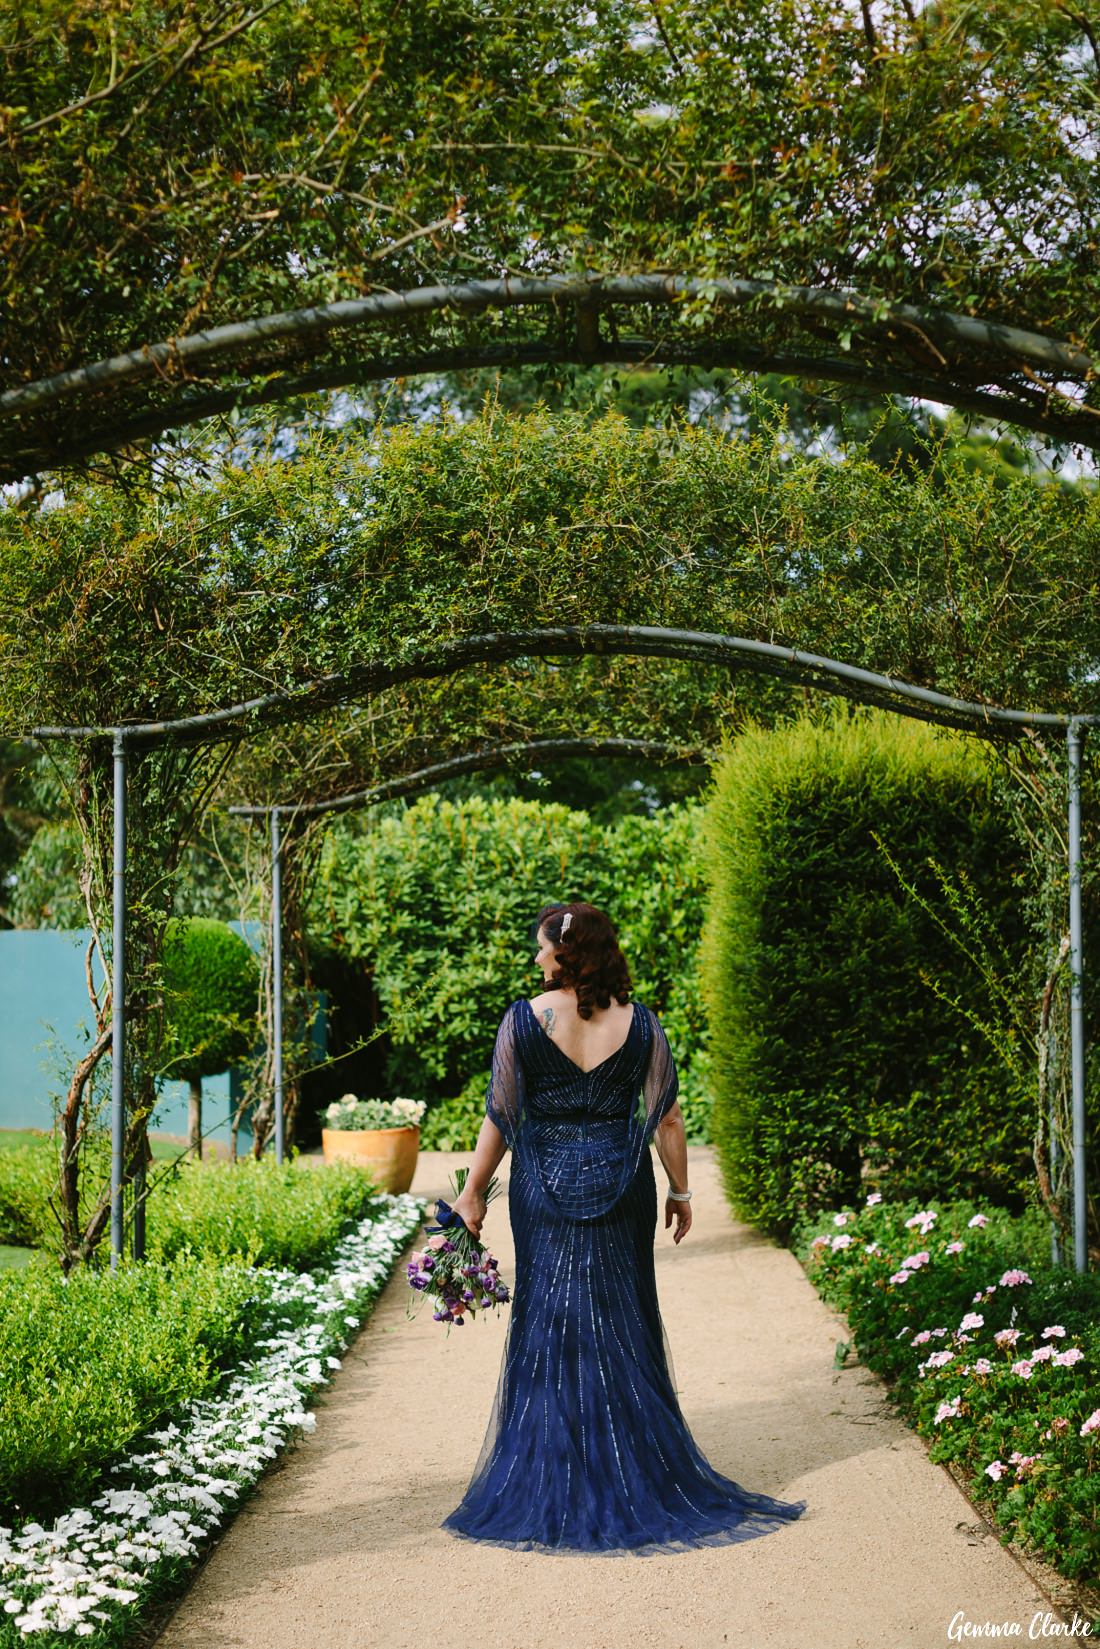 Cherie showing off her amazing blue wedding dress amongst the arches and flowers at her Mount Tomah Botanic Gardens Wedding